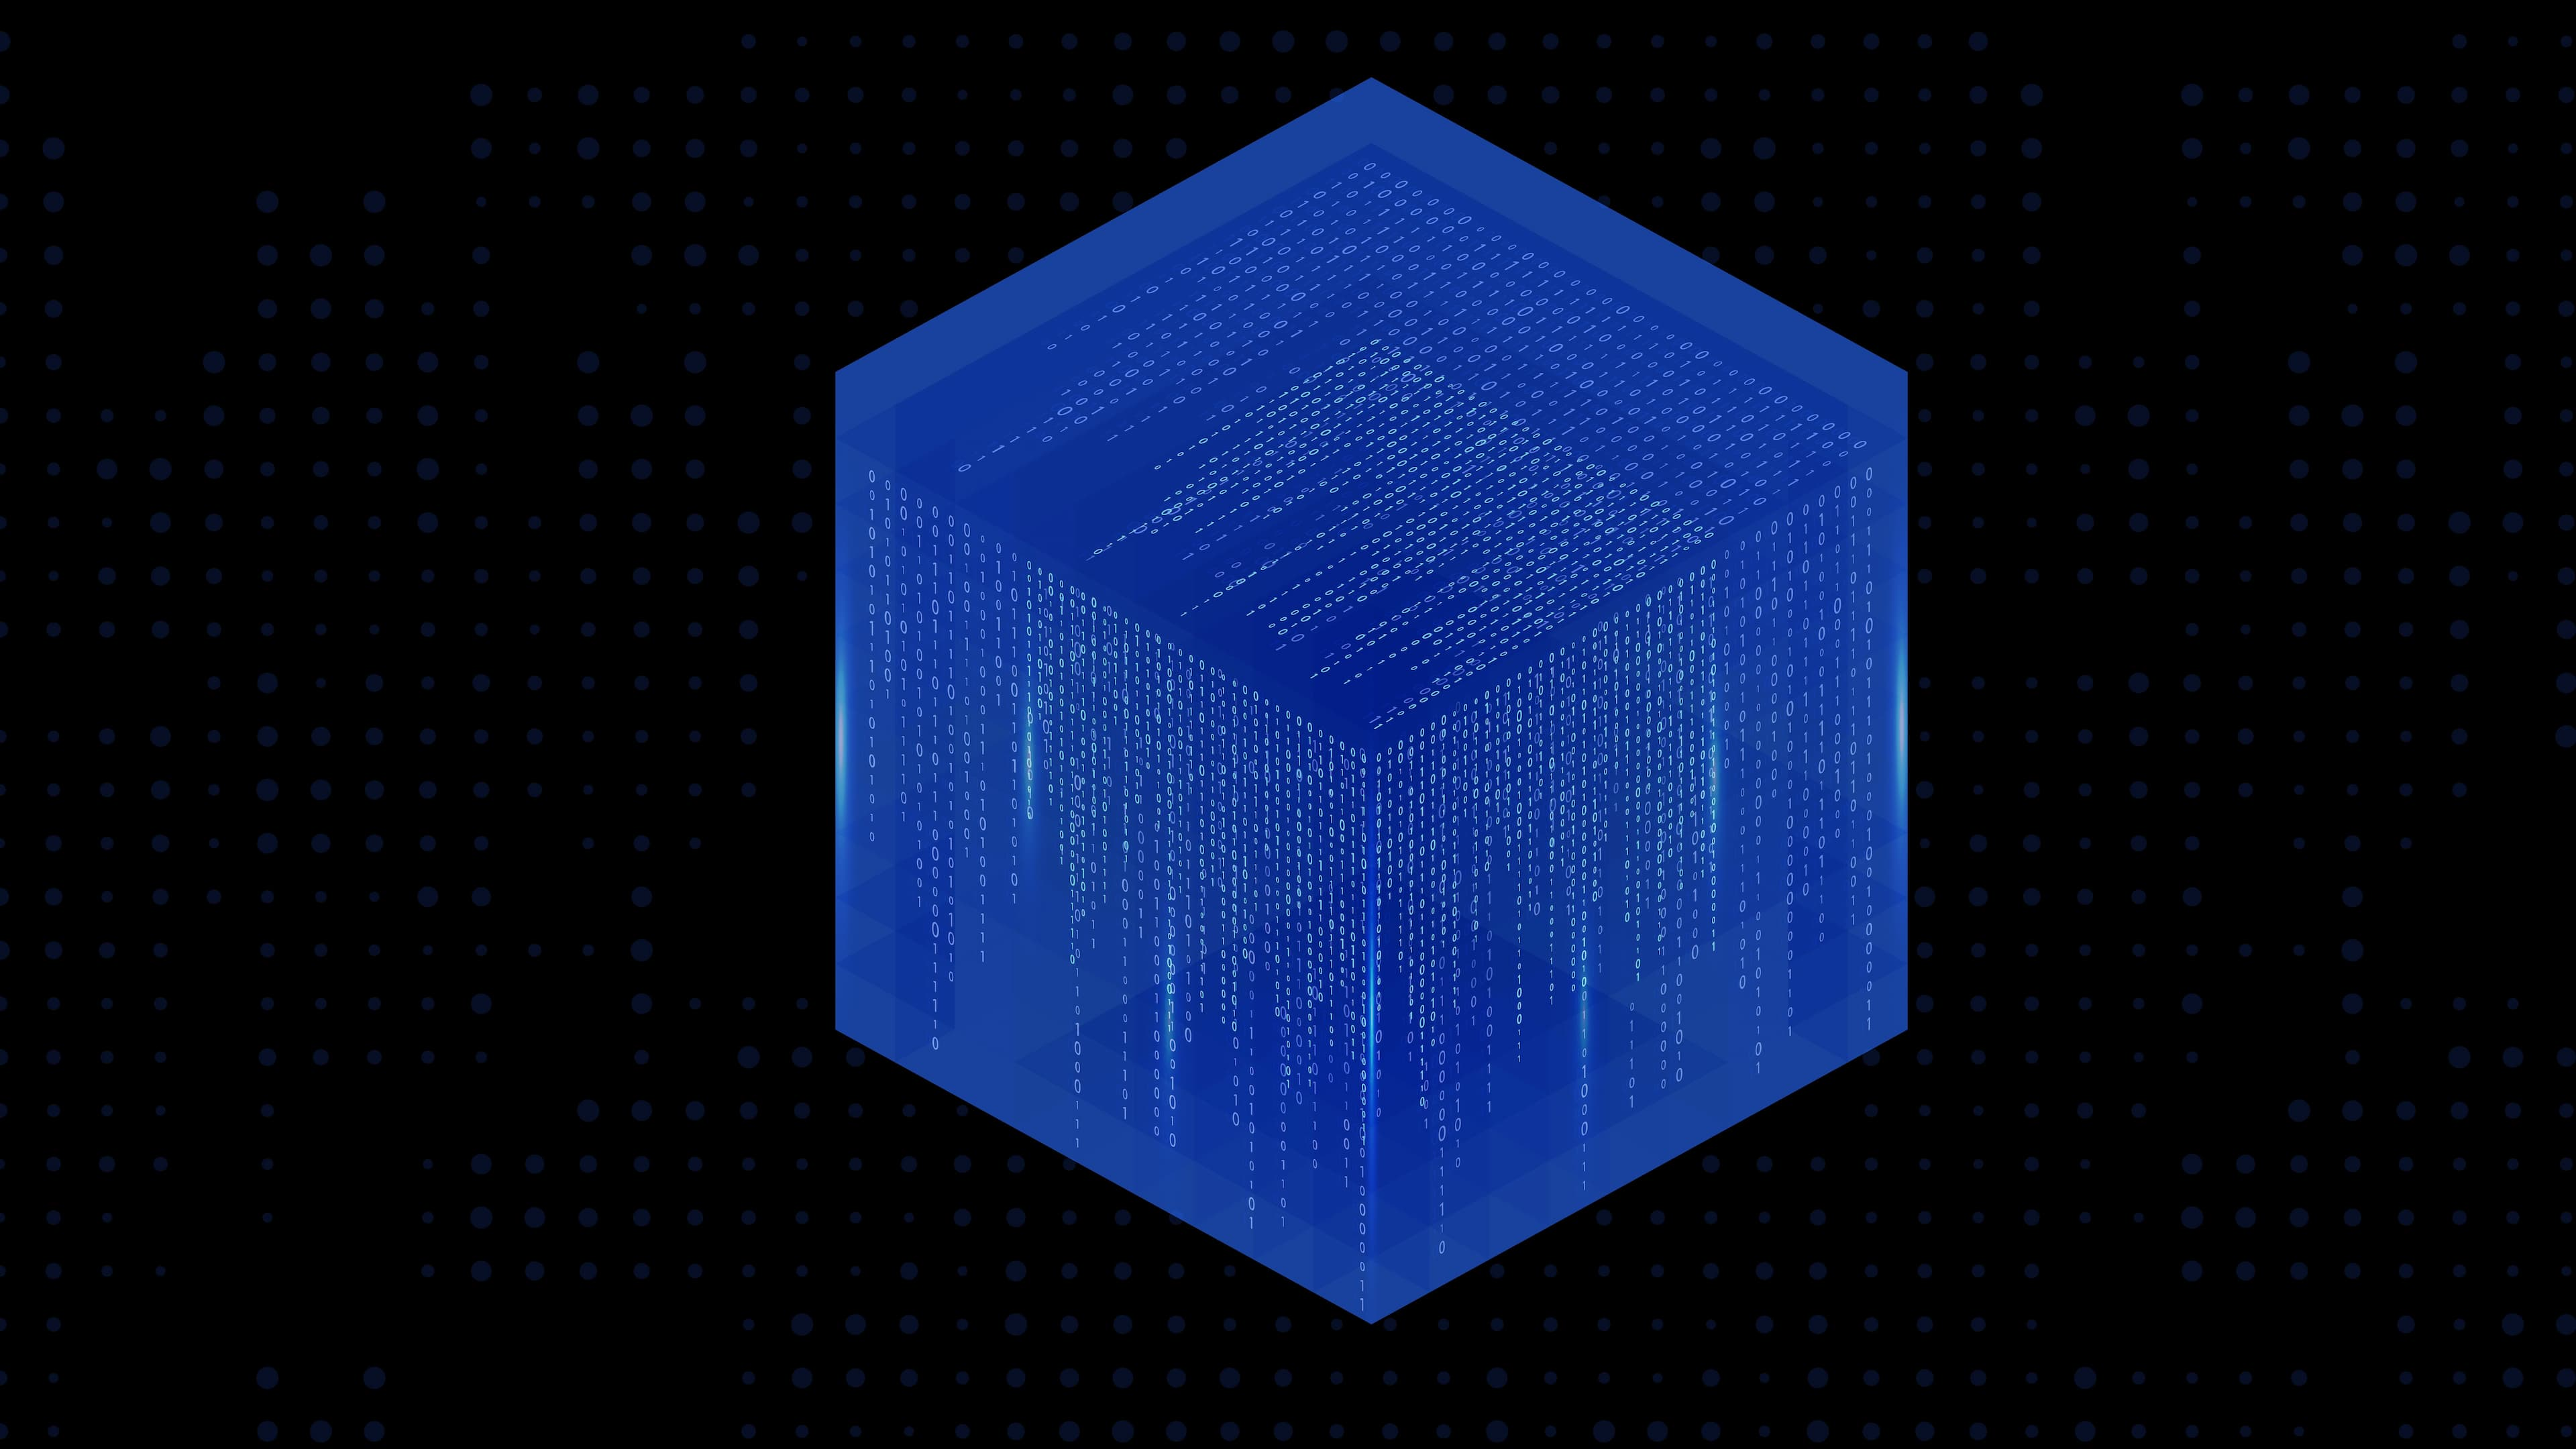 Researchers develop defenses against deep learning hack attacks